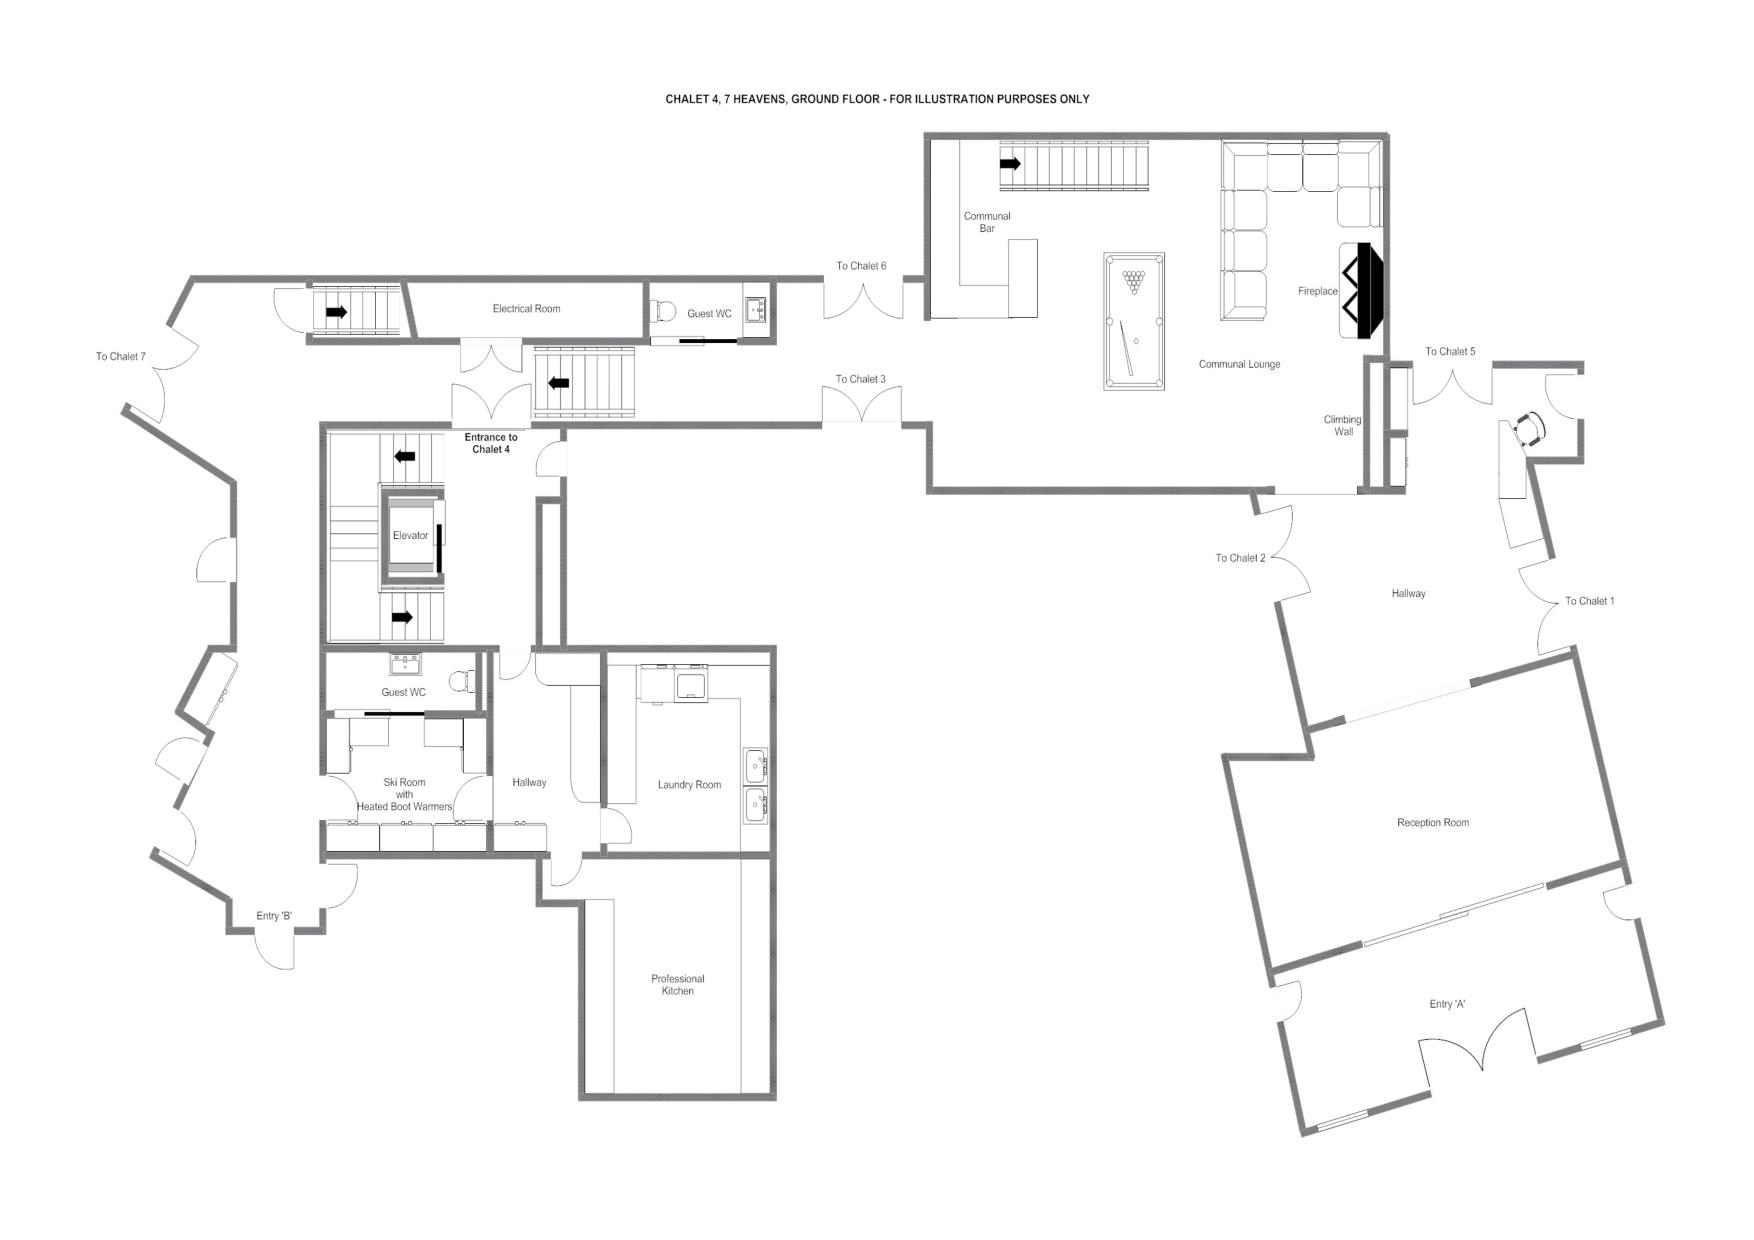 Chalet Mckinley Luxury Swiss In Zermatt Haute Montagne Bedroom Wiring Diagram This Includes The Wall Ski Room With Heated Boot Warmers